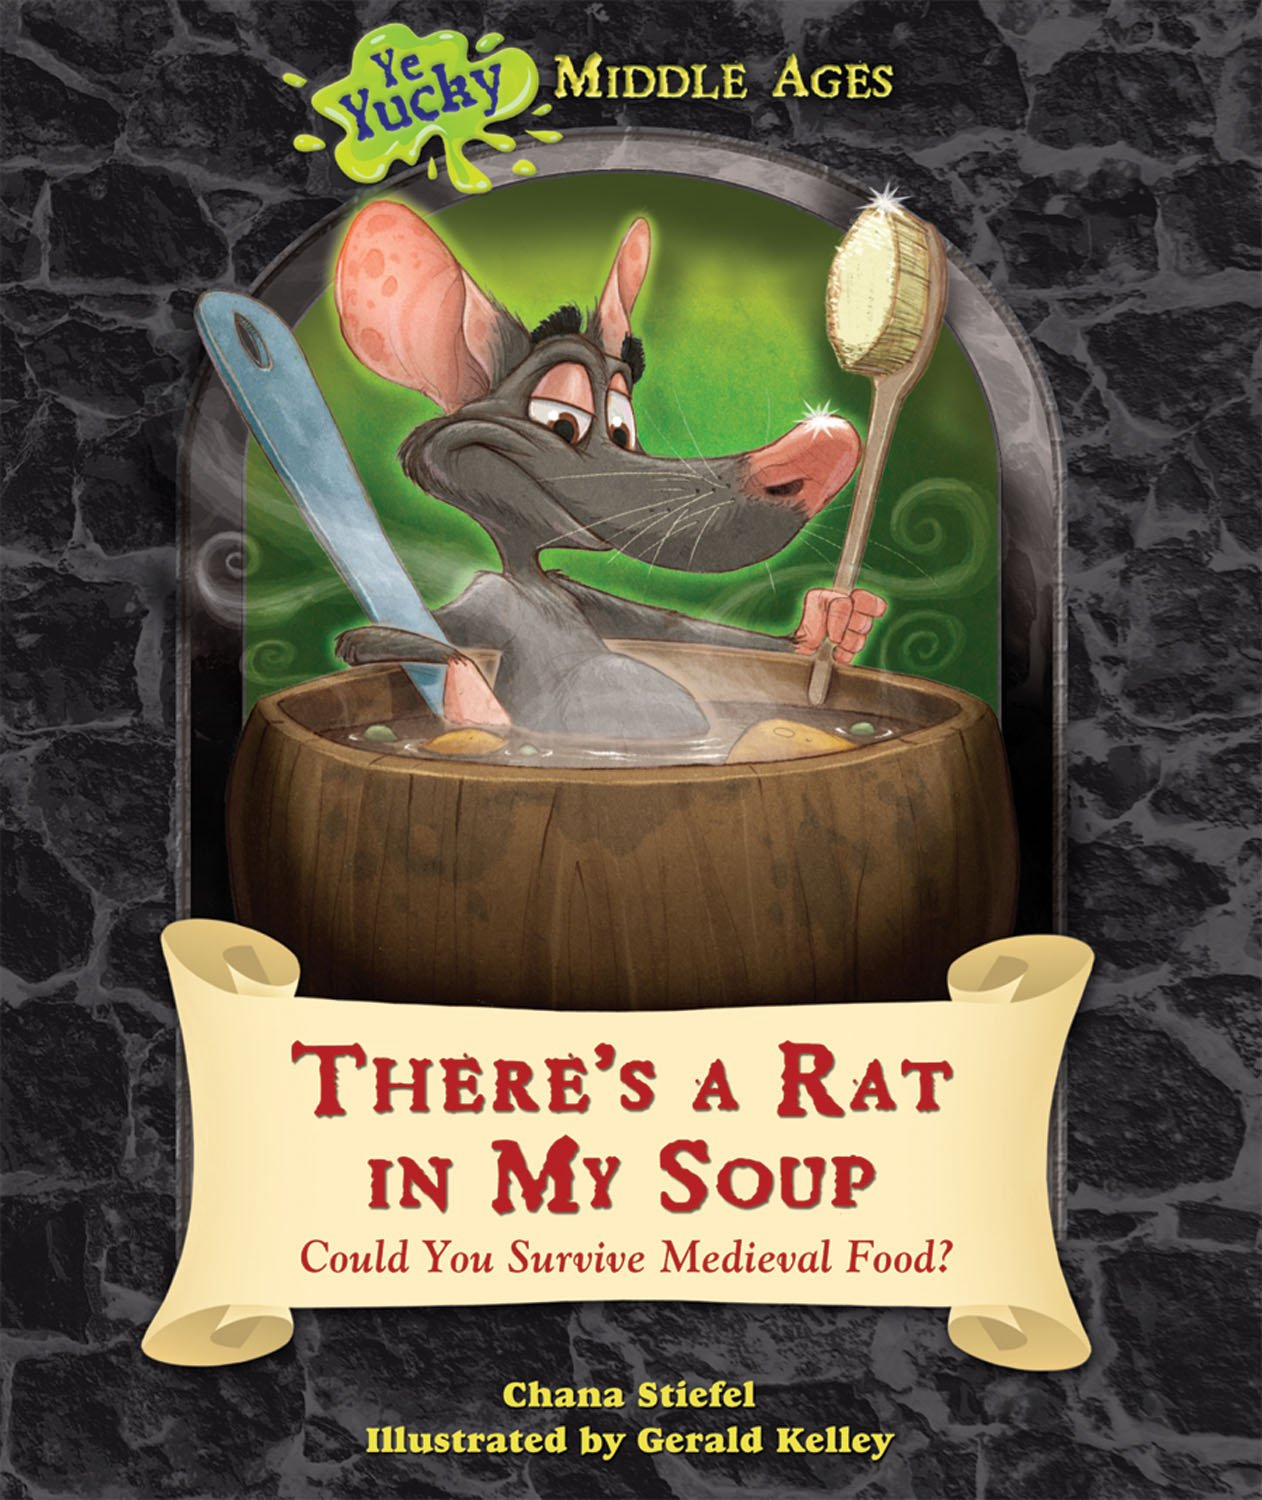 There's a Rat in My Soup: Could You Survive Medieval Food? (Ye Yucky Middle Ages) ebook